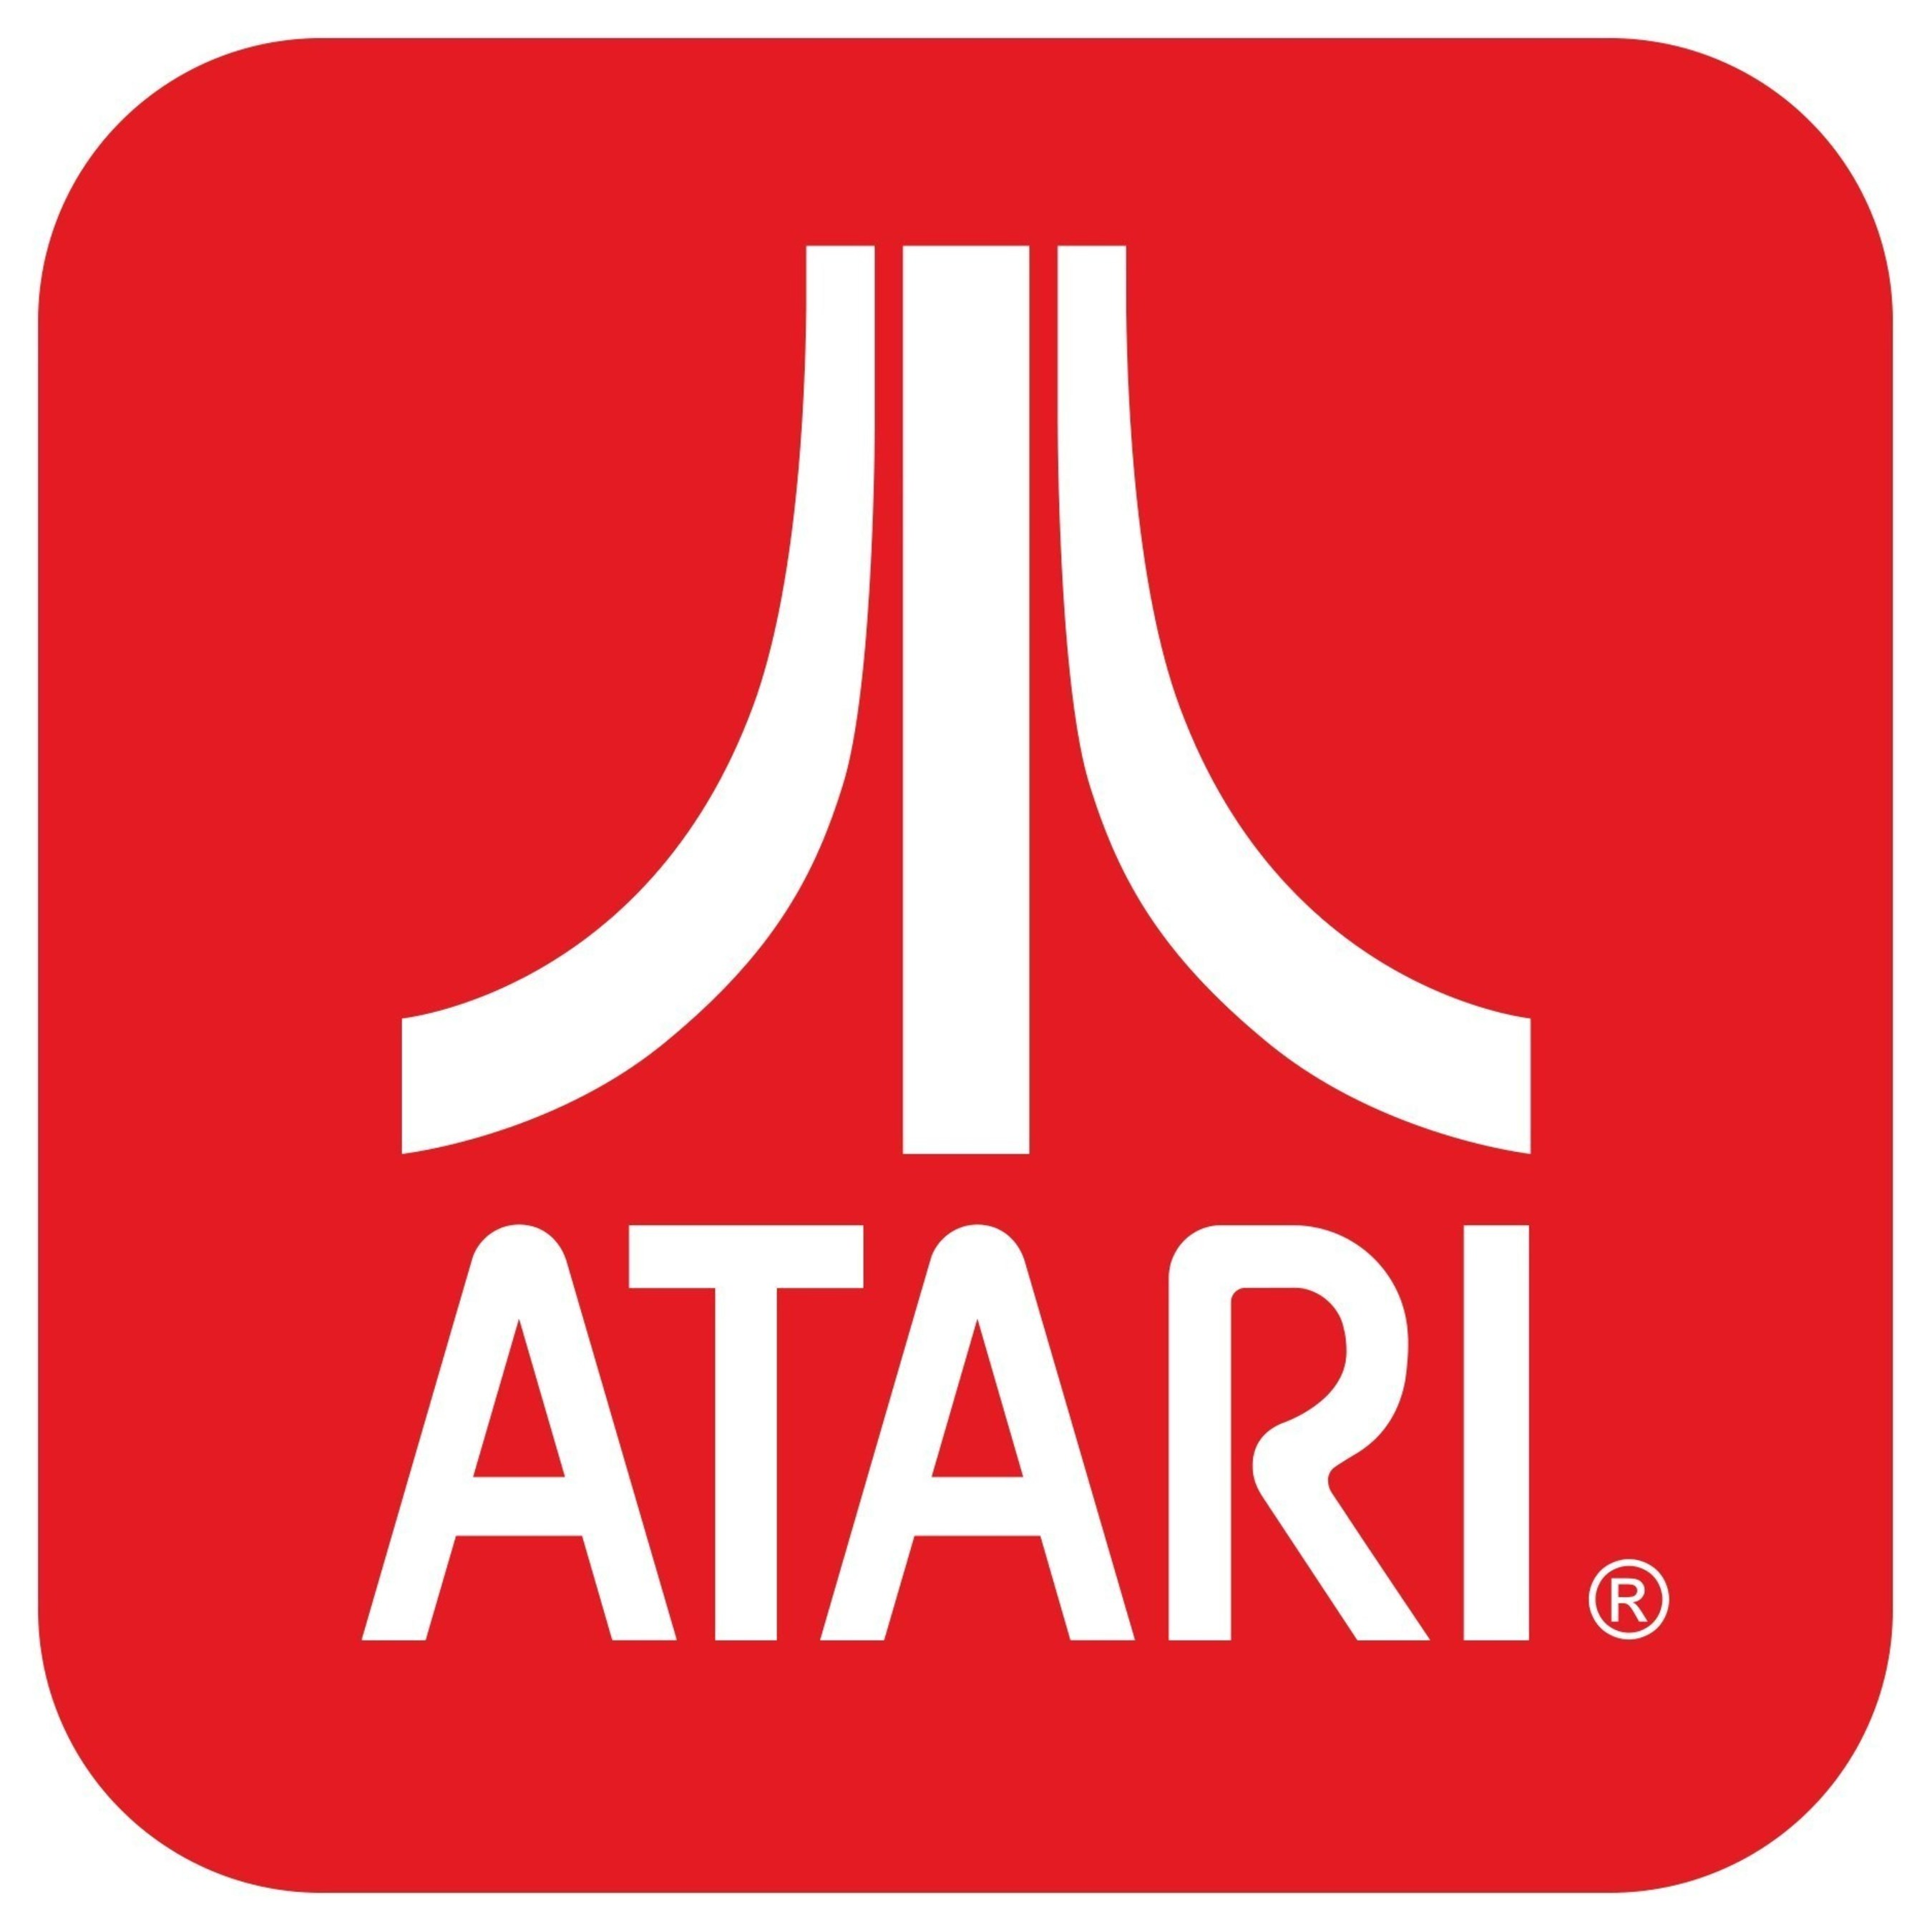 Innovative Audio Company ROAM' and Atari' Announce Partnership to Develop Co-Branded Headphones and Earphones Based on Atari's Iconic Brand